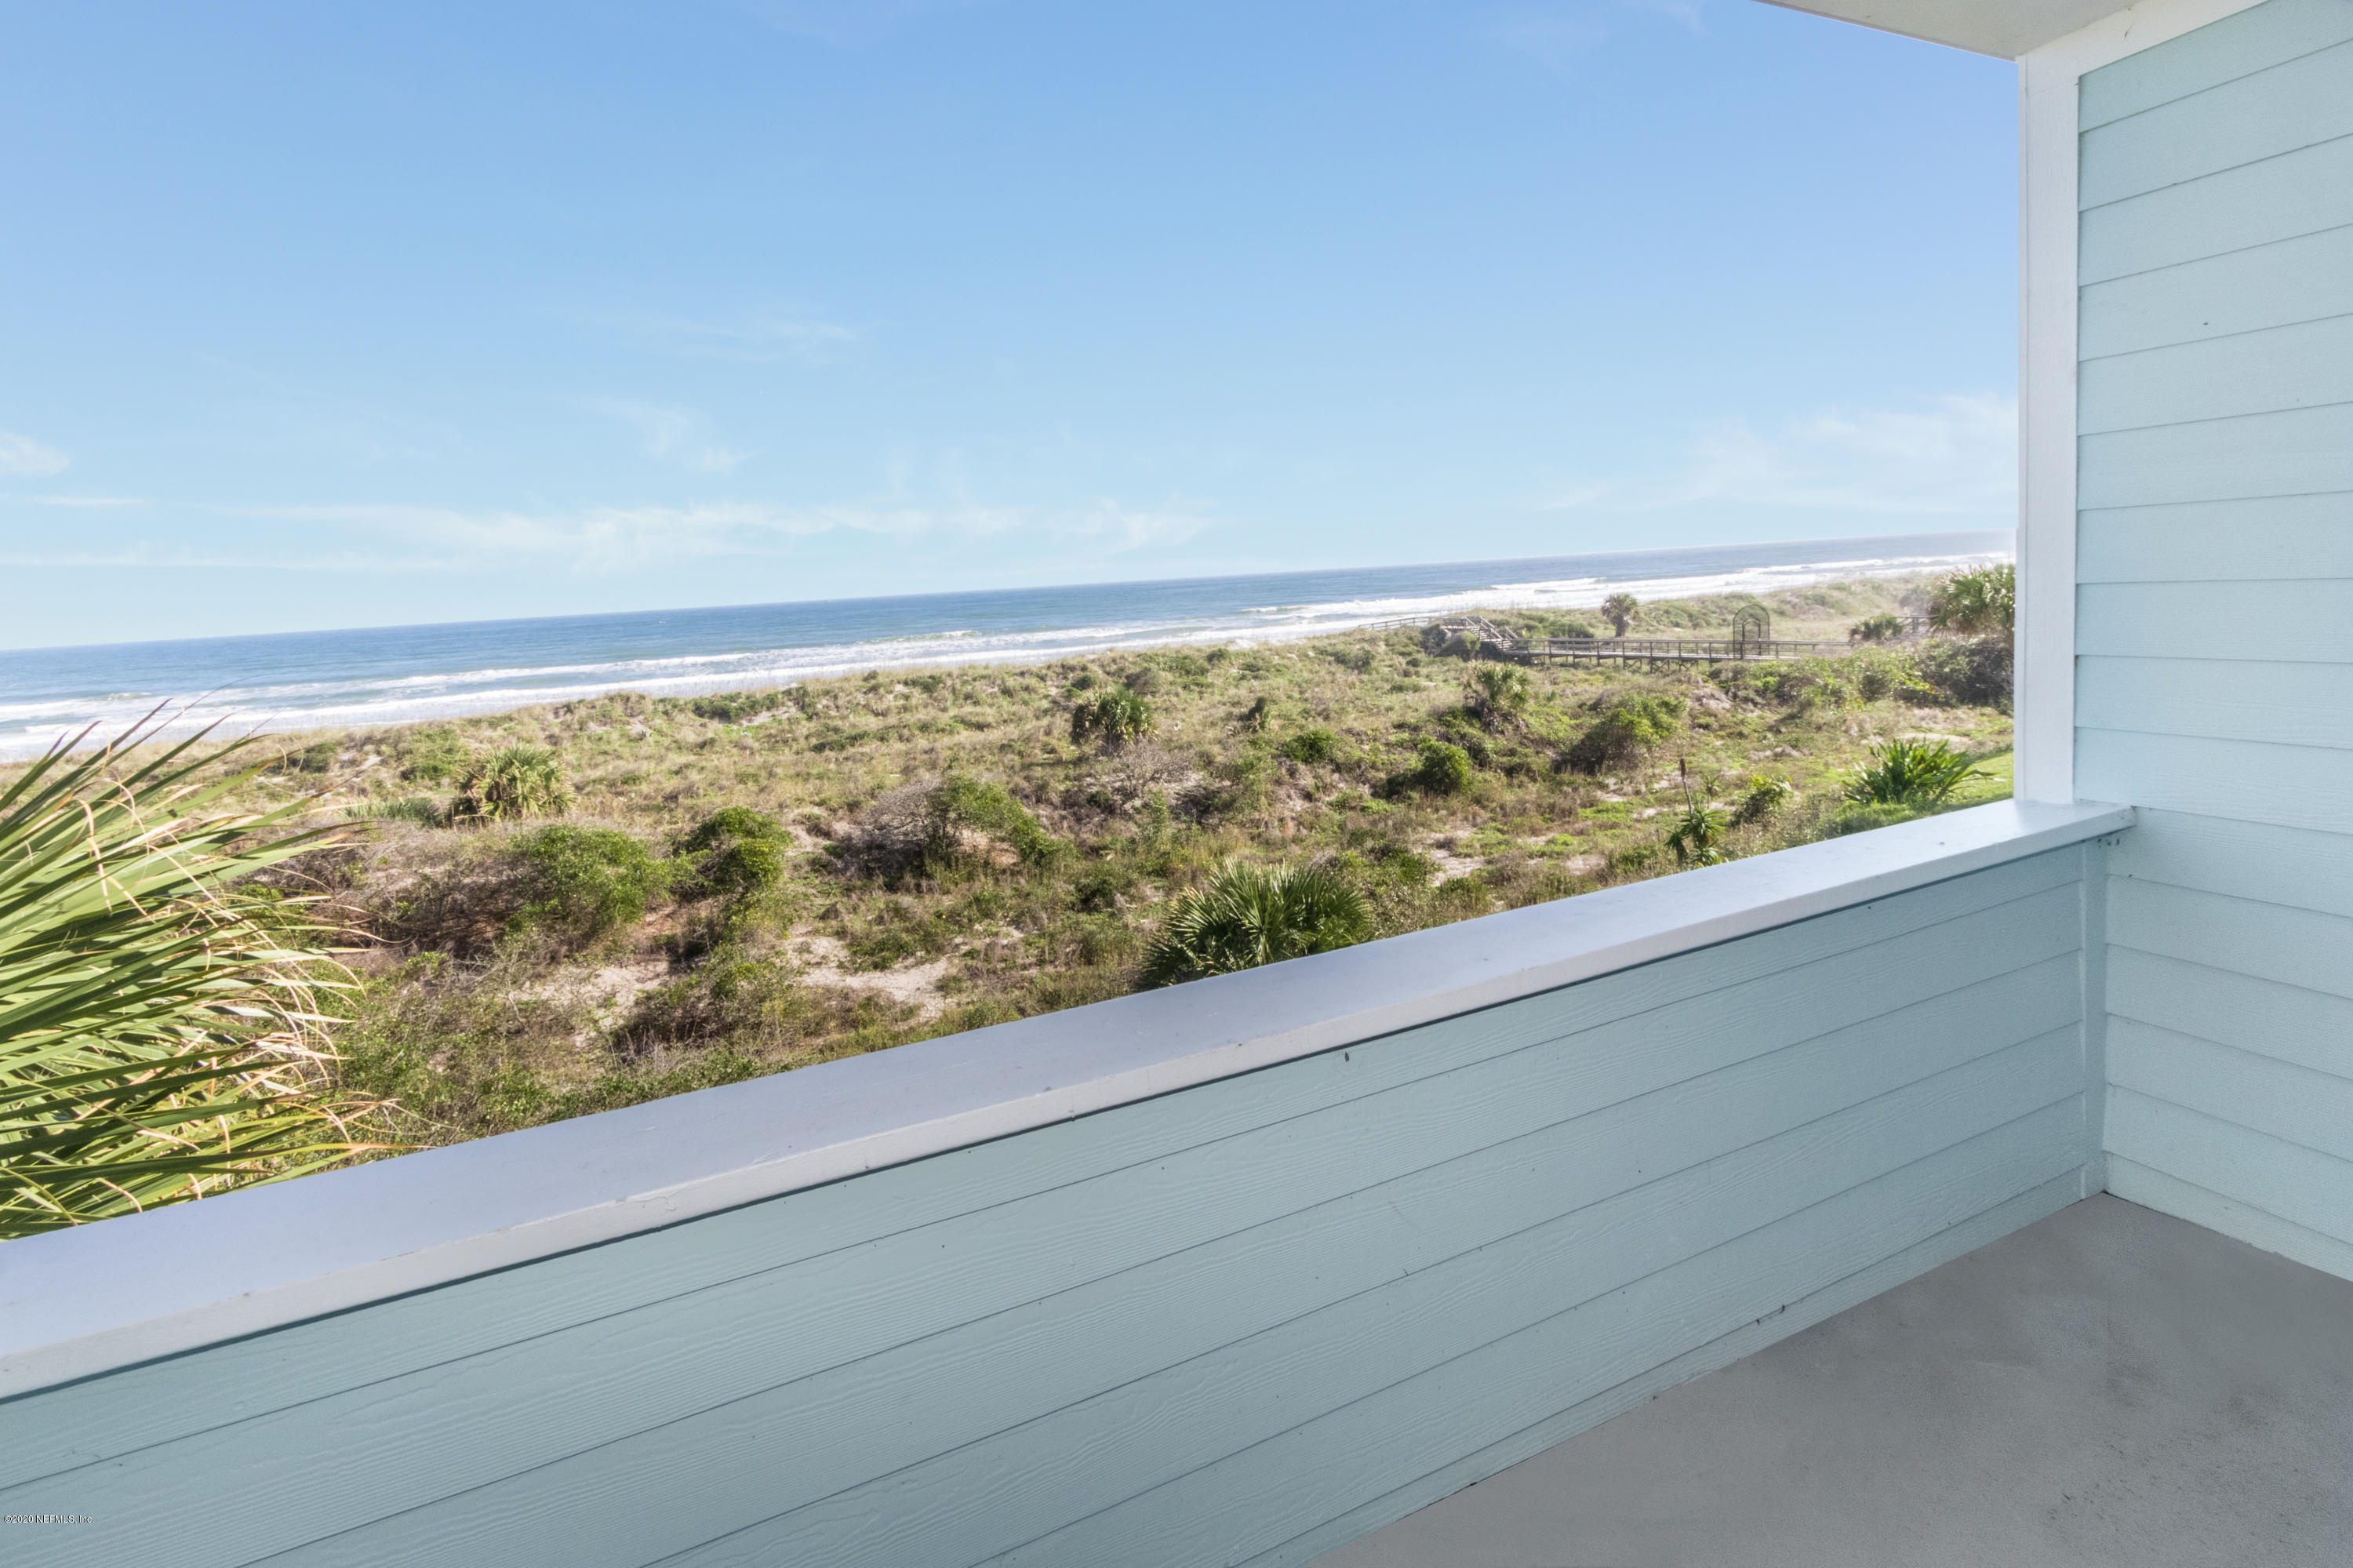 6300 A1A, ST AUGUSTINE, FLORIDA 32080, 2 Bedrooms Bedrooms, ,2 BathroomsBathrooms,For sale,A1A,1032806